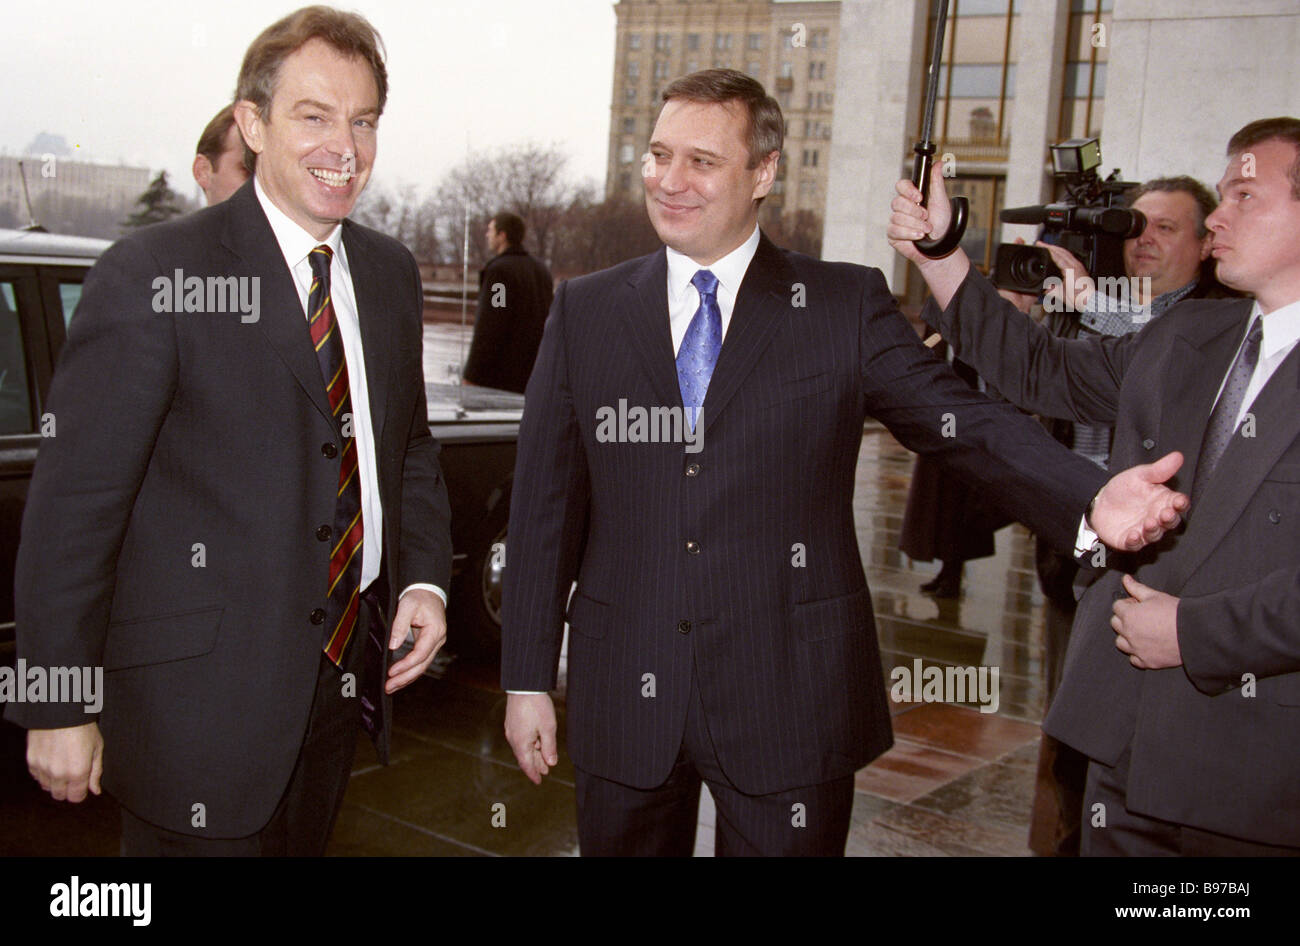 Formal russian greeting image collections greeting card examples russian prime minister mikhail kasyanov right greeting british russian prime minister mikhail kasyanov right greeting british kristyandbryce Images